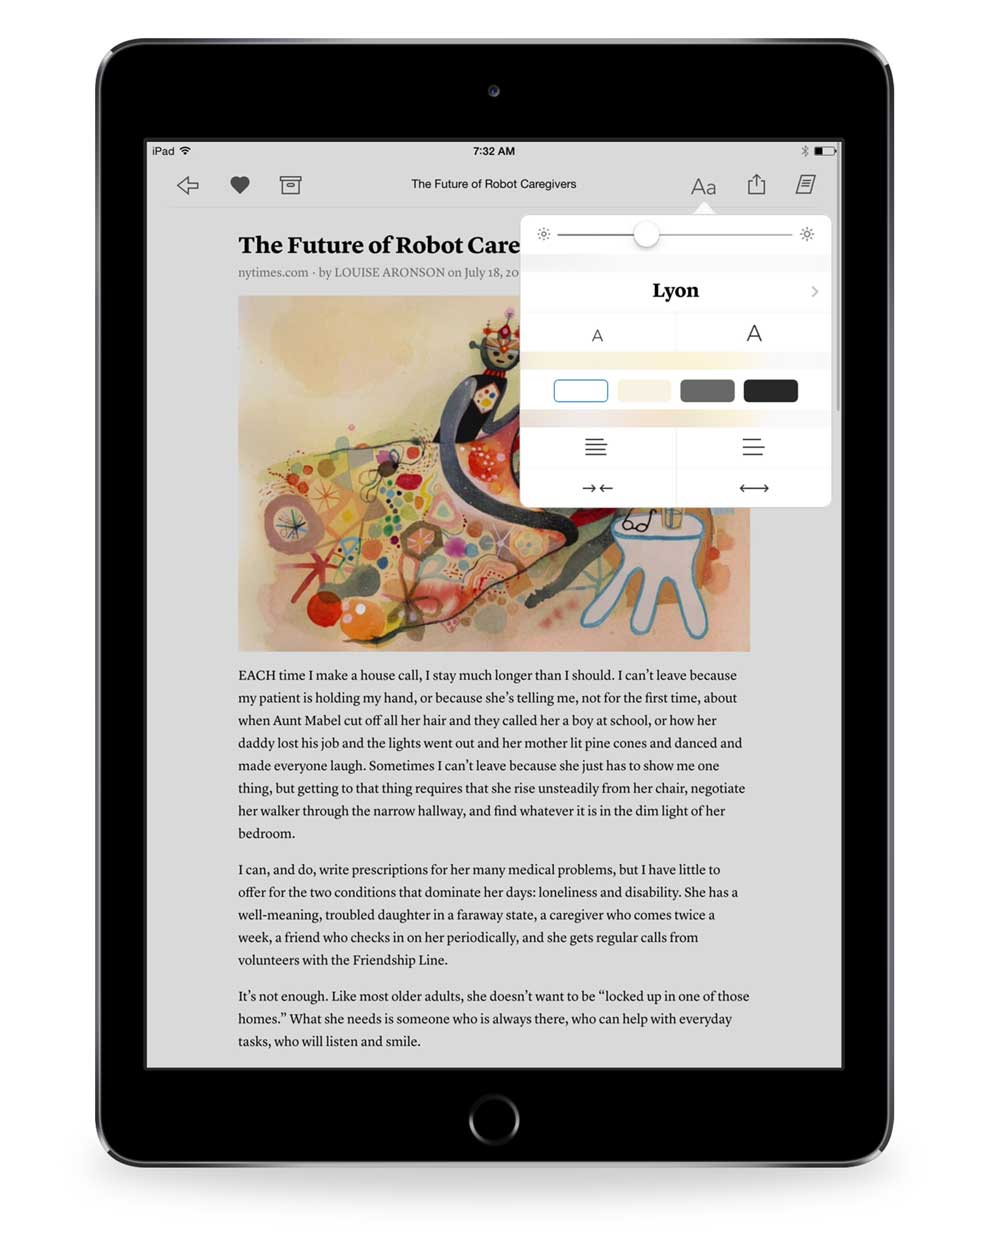 screenshot 3 Instapaper typography and background options